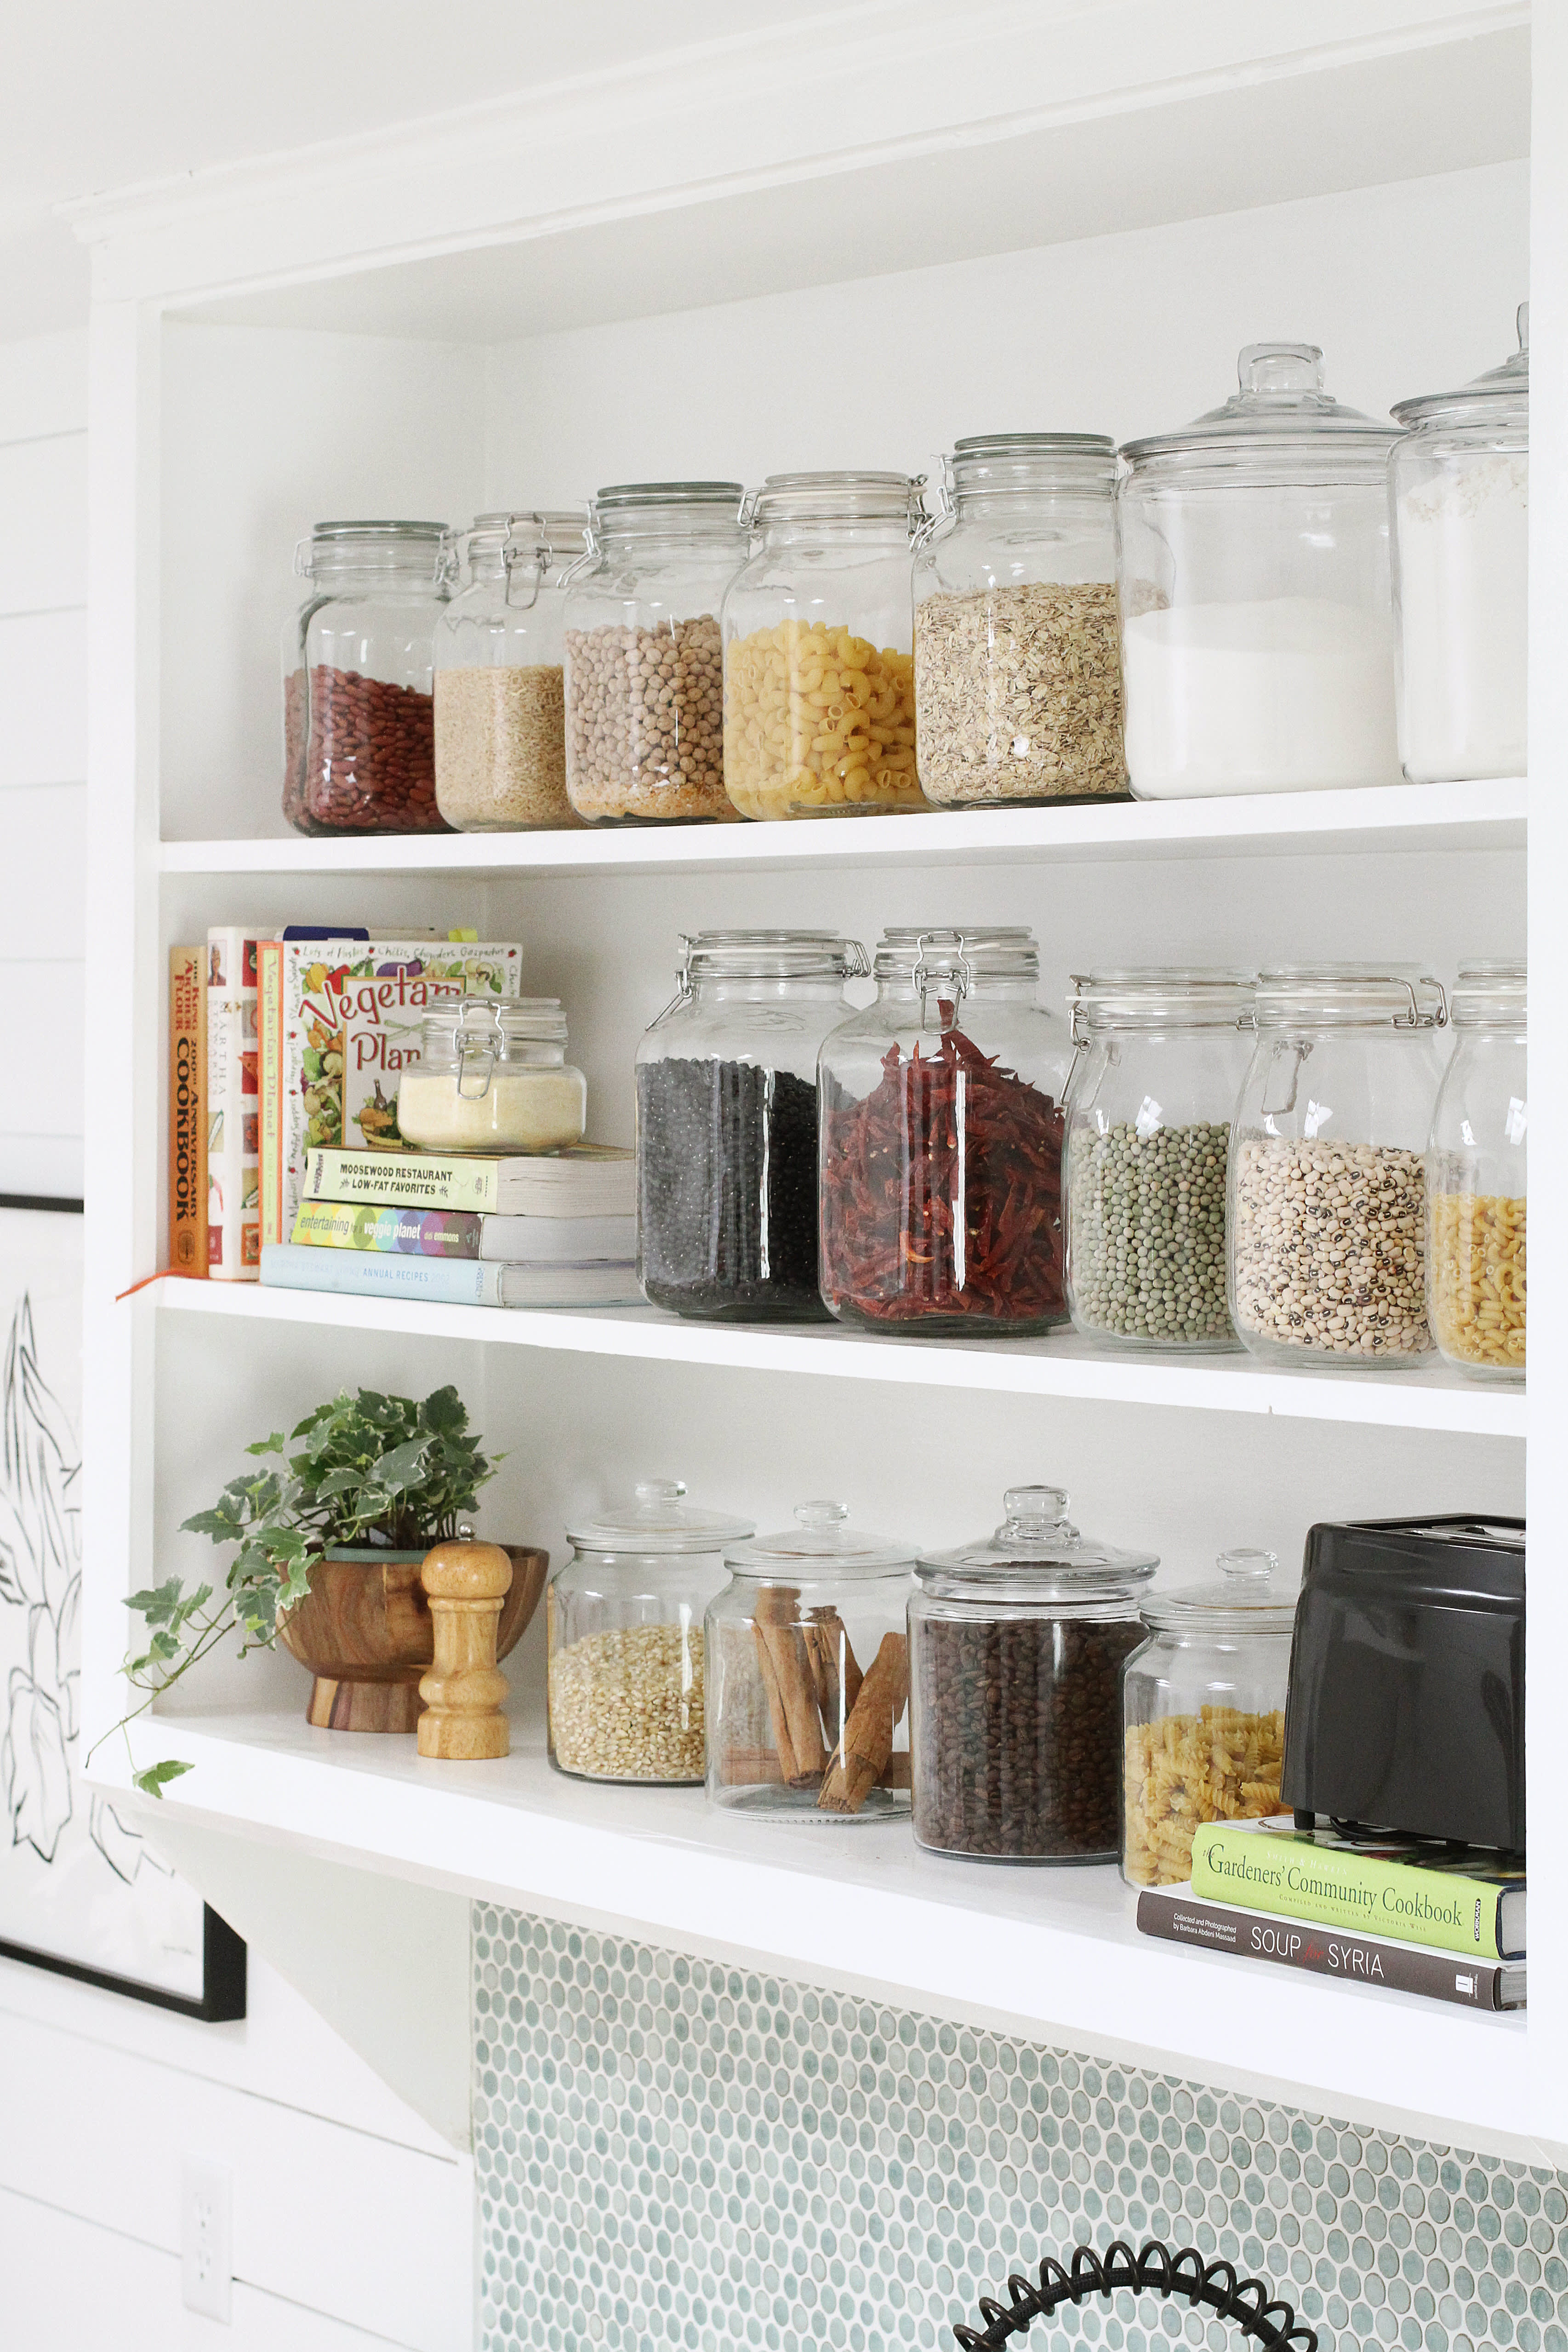 5 budget saving secrets of our 6k kitchen remodel gallery image 10